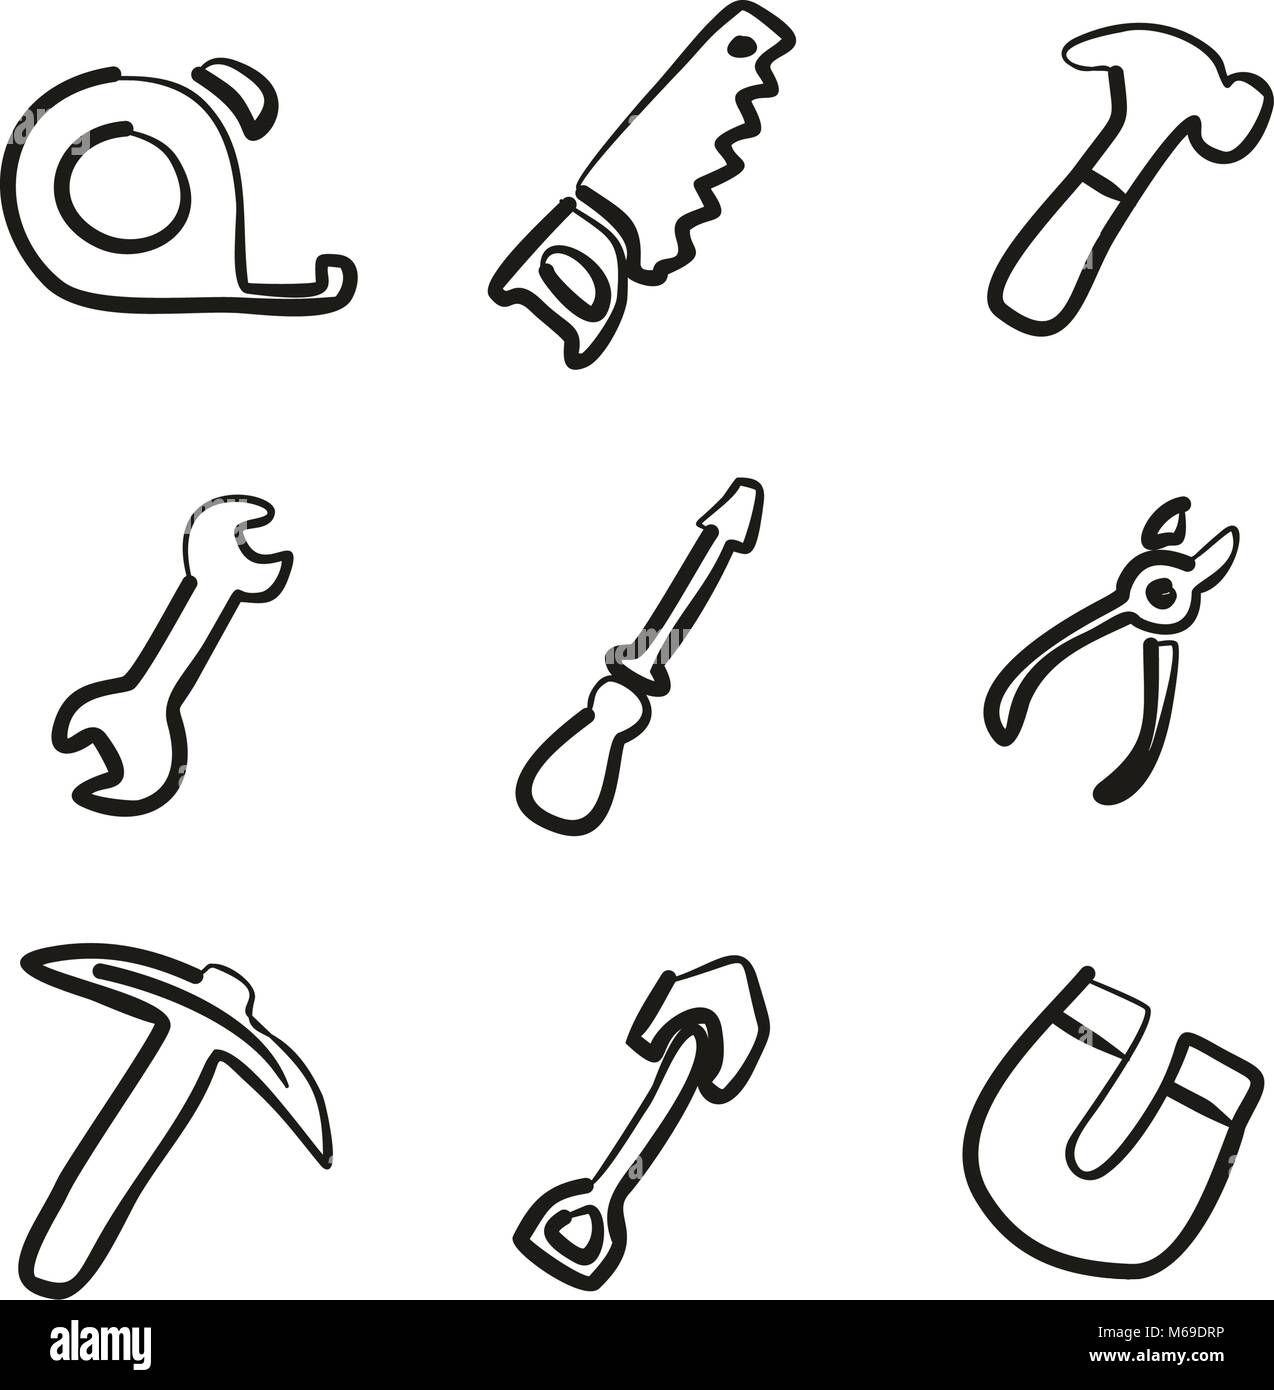 Tools Icons Freehand - Stock Vector